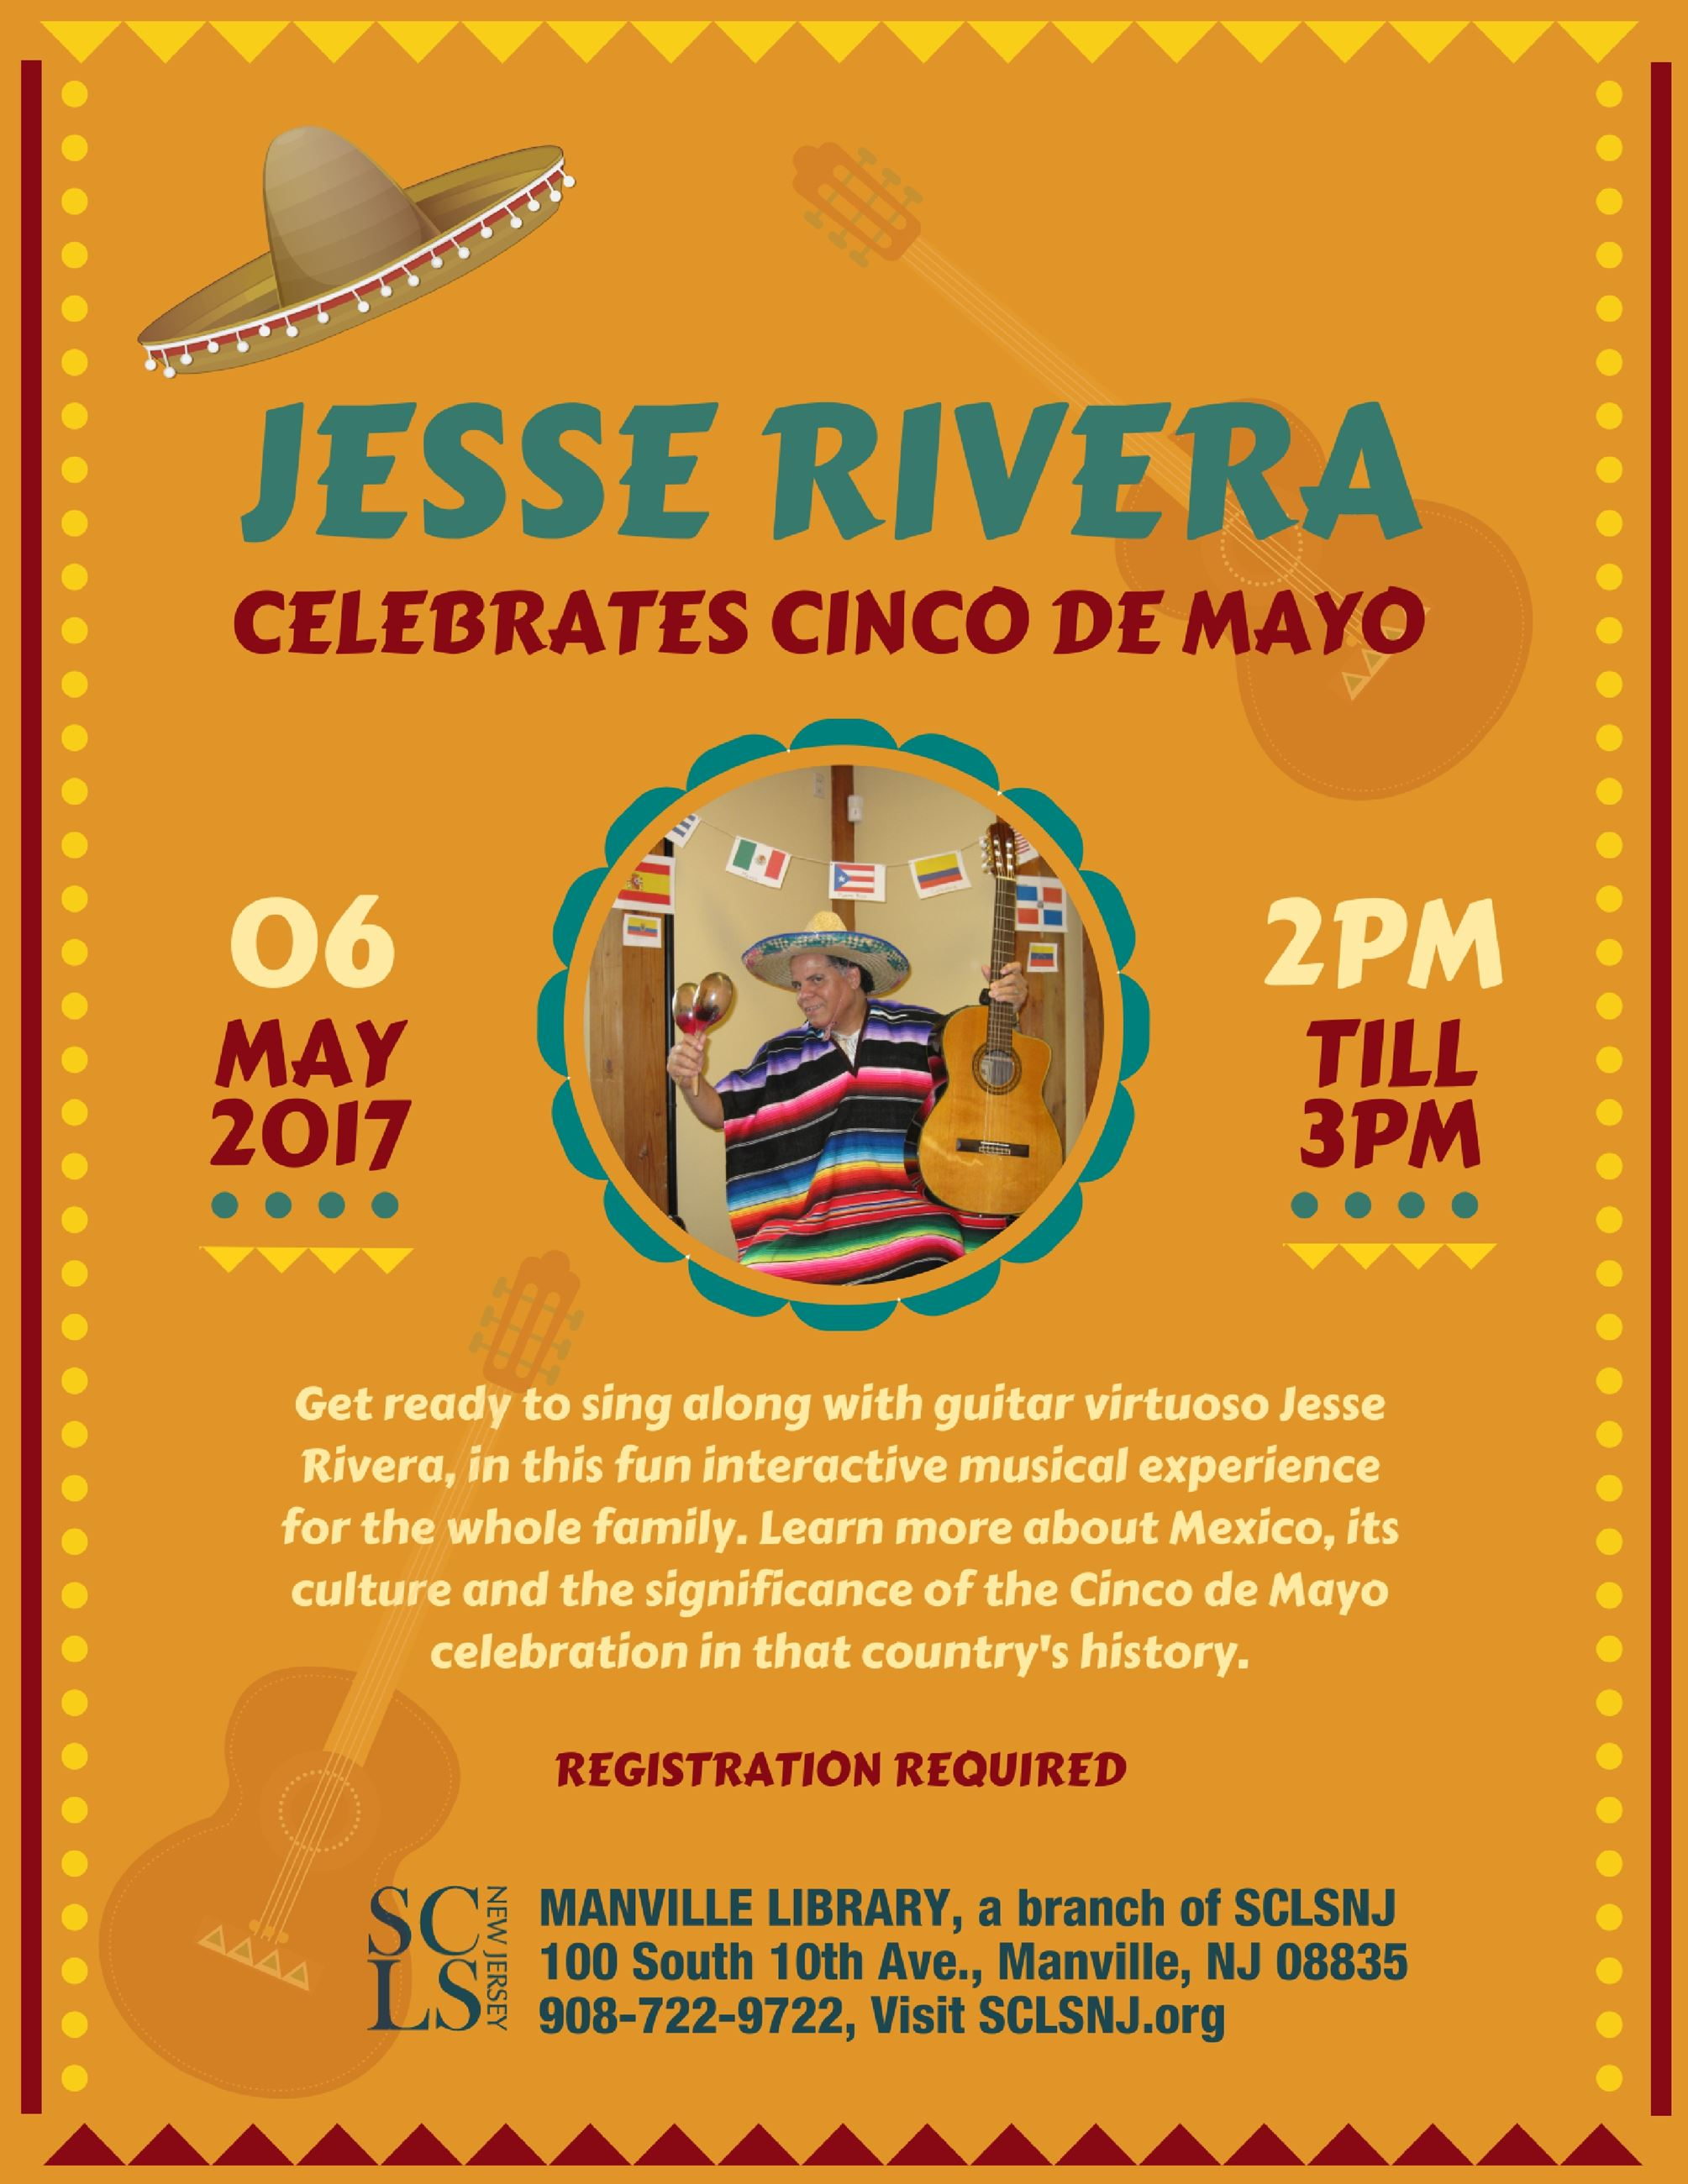 Jesse Rivera Celebrates Cinco de Mayo